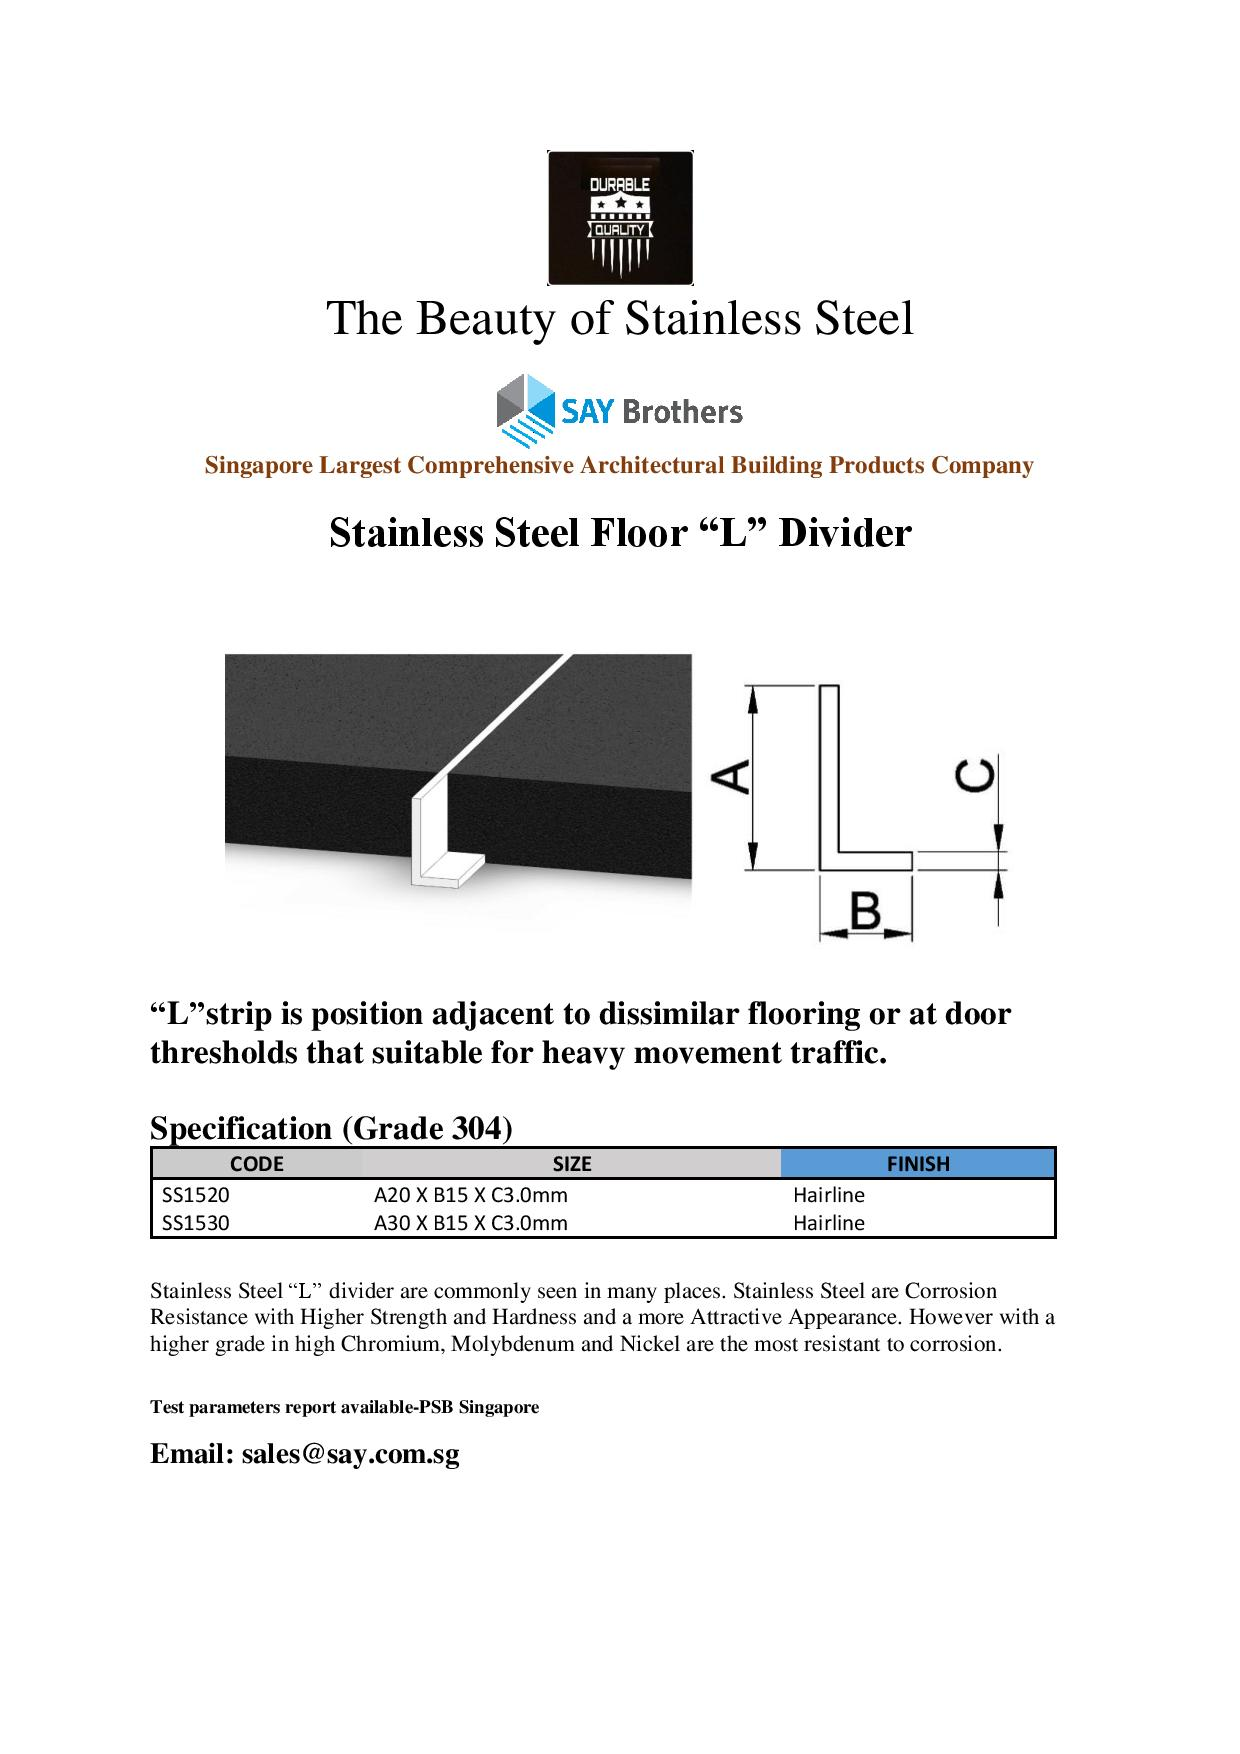 Stainless sSteel L Divider